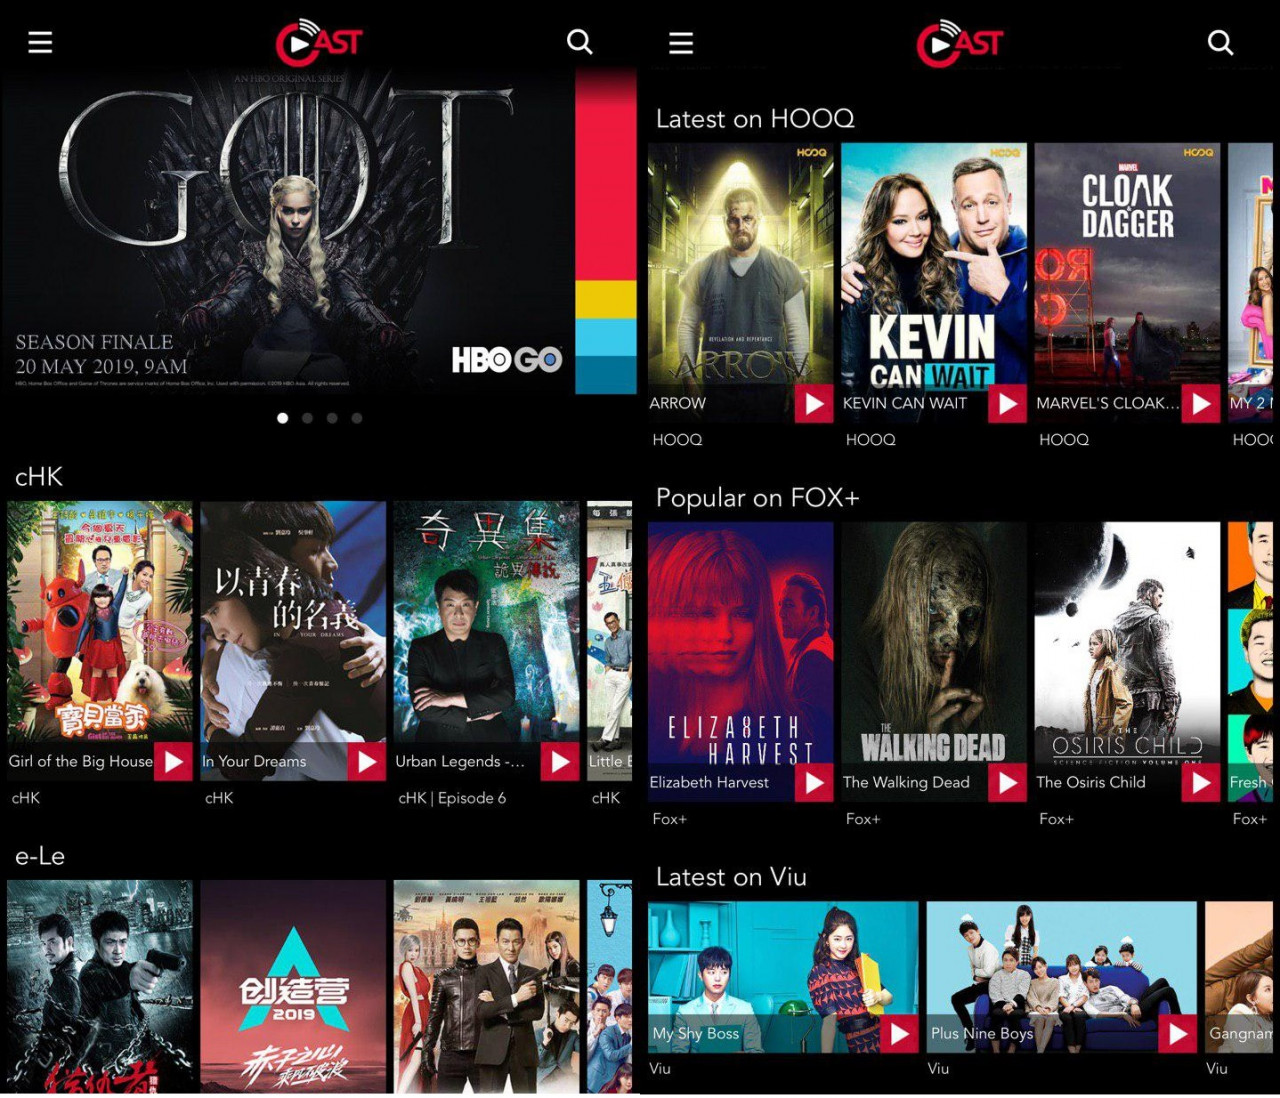 Singtel Entertainment Plus - CAST app